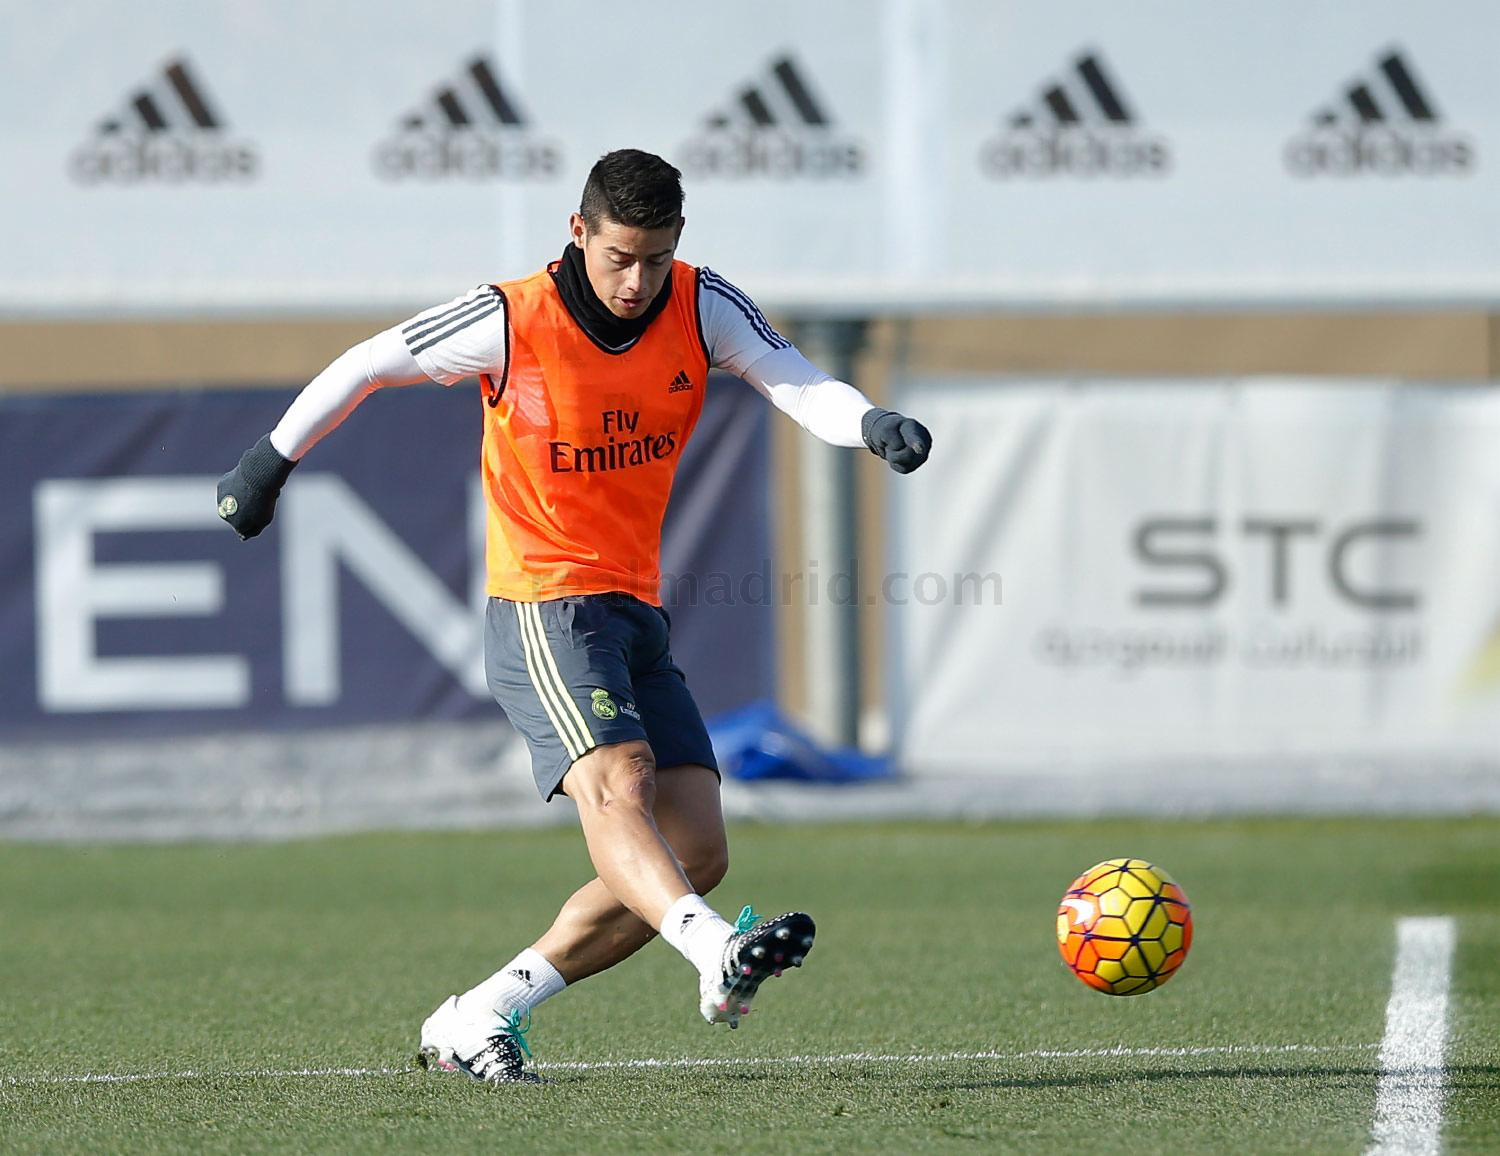 Real Madrid - Entrenamiento del Real Madrid - 04-12-2015